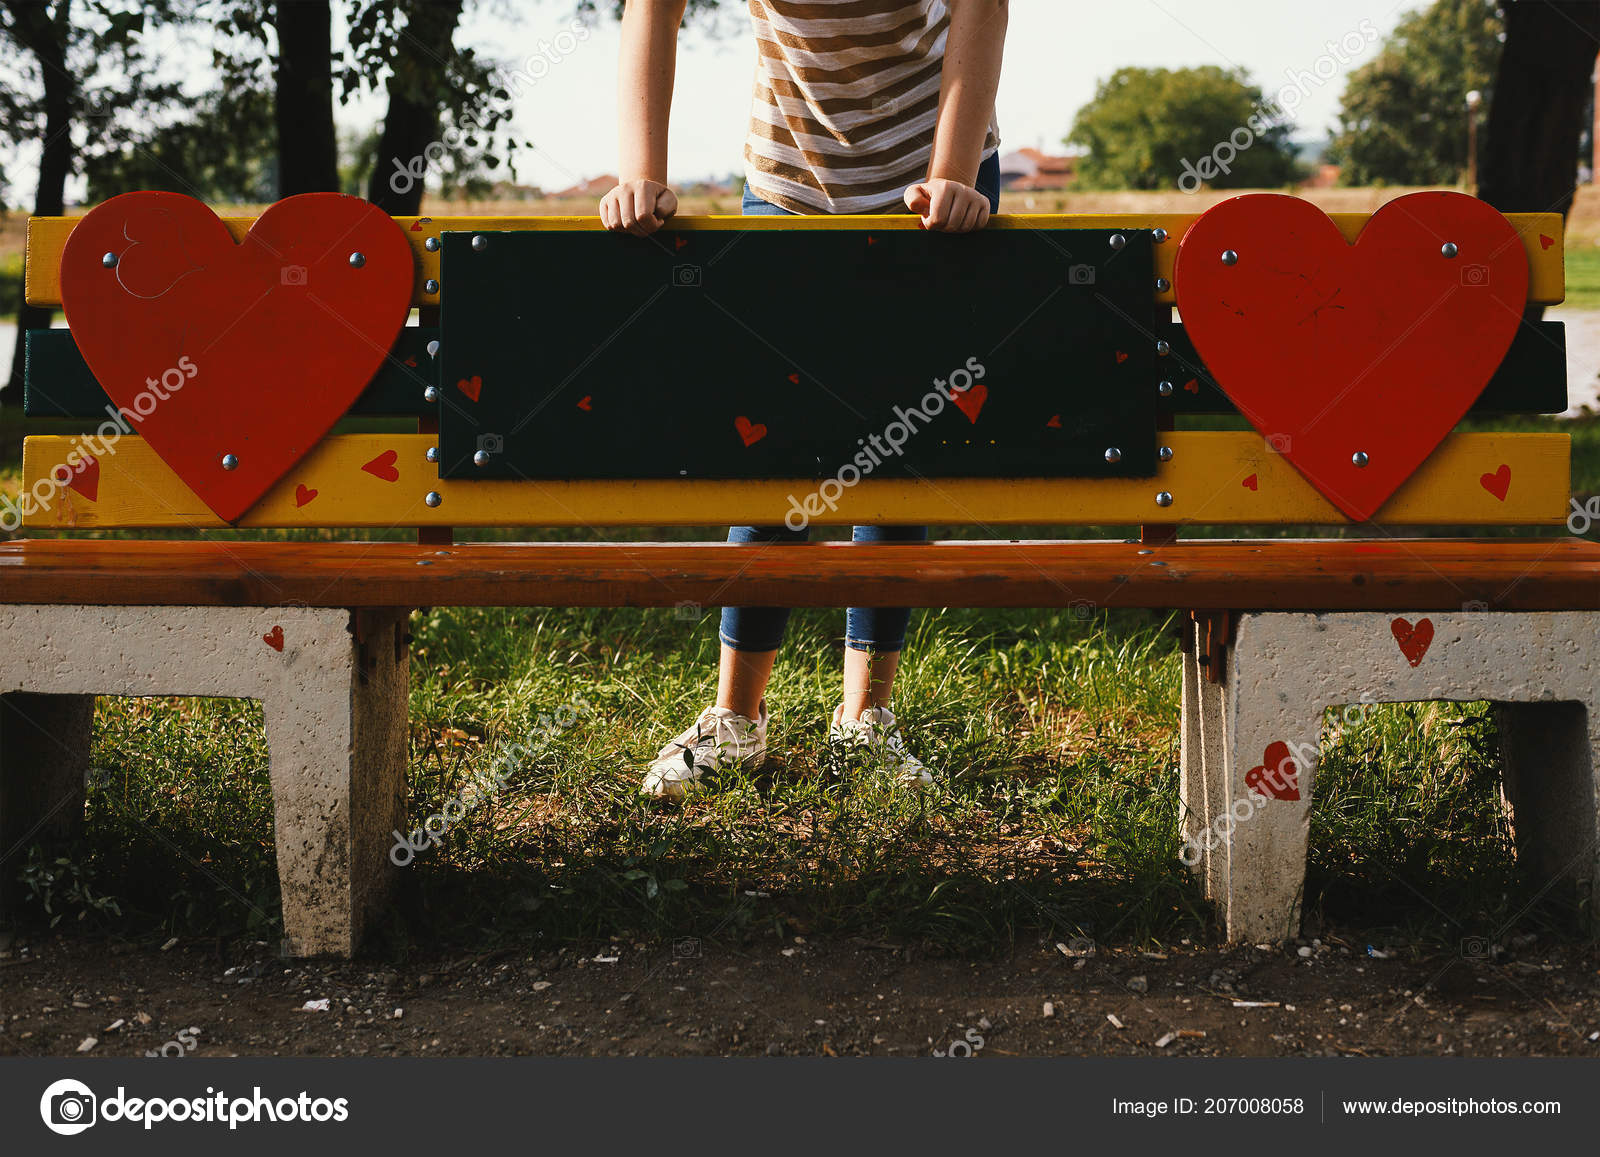 Decorated Park Bench Heart Symbols One Girl Back Leaning Stock